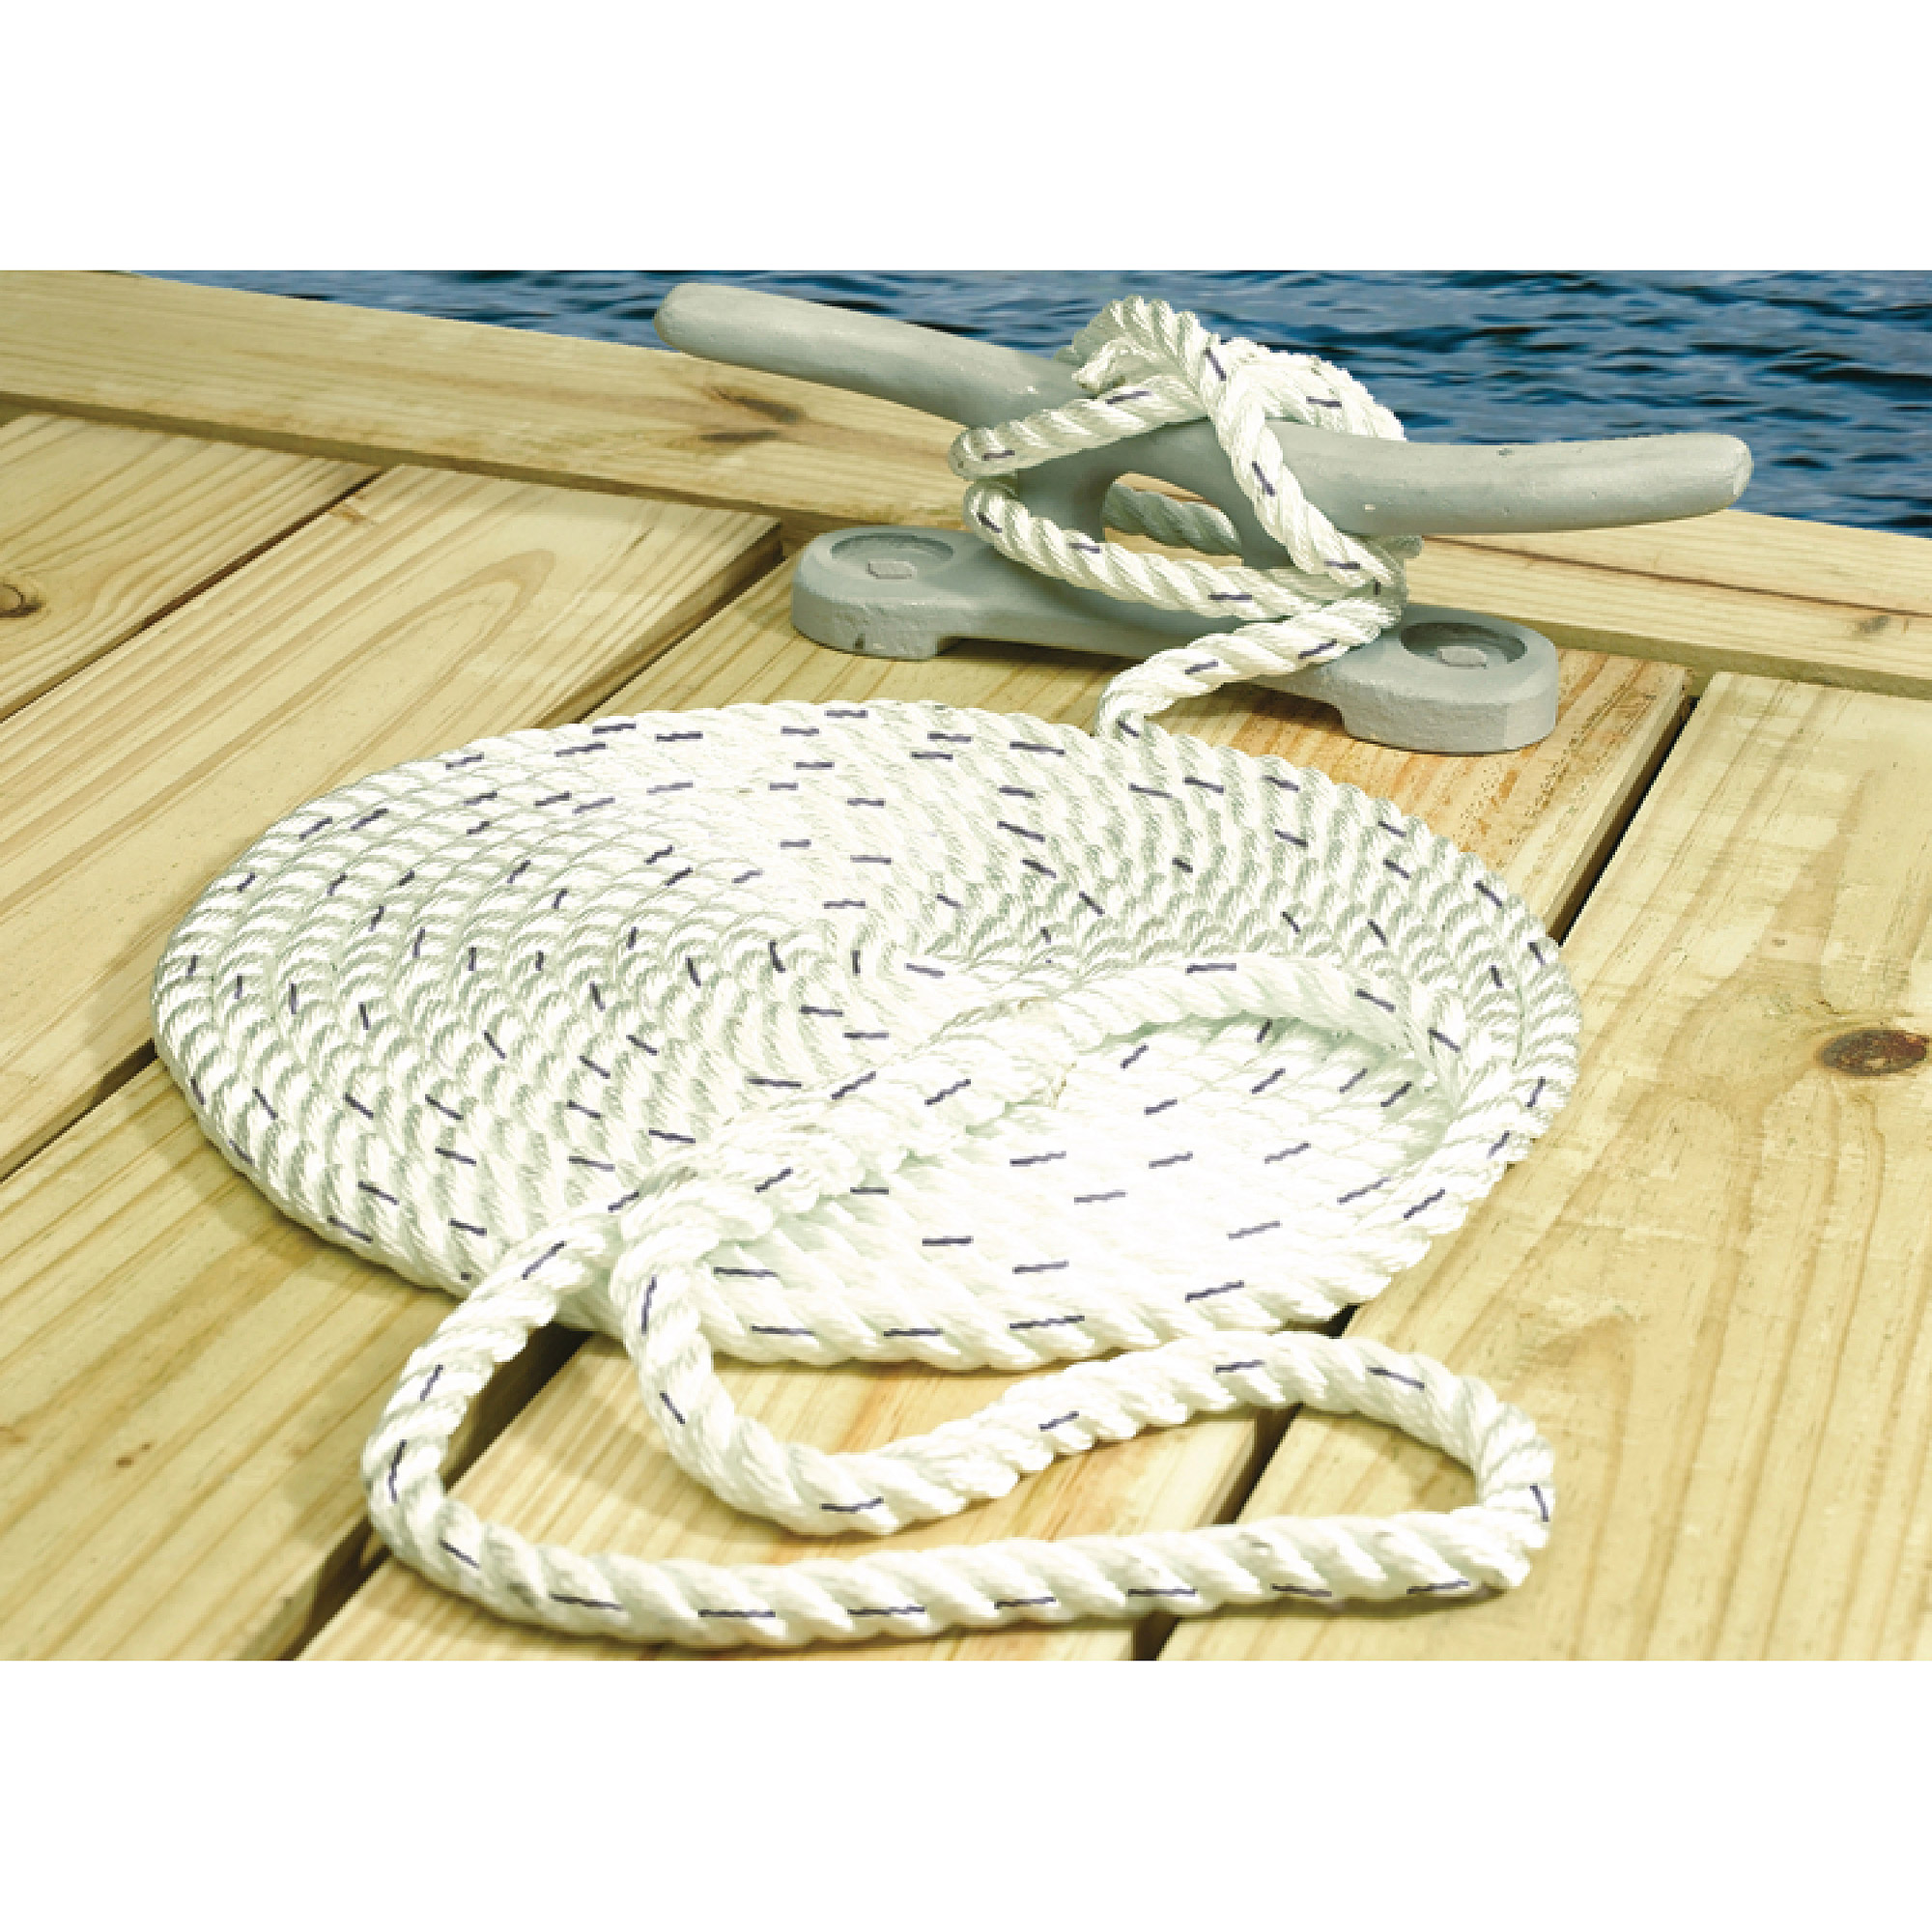 Seachoice Premium 3-Strand Twisted Nylon Dock Line, White with Blue Tracer by Seachoice